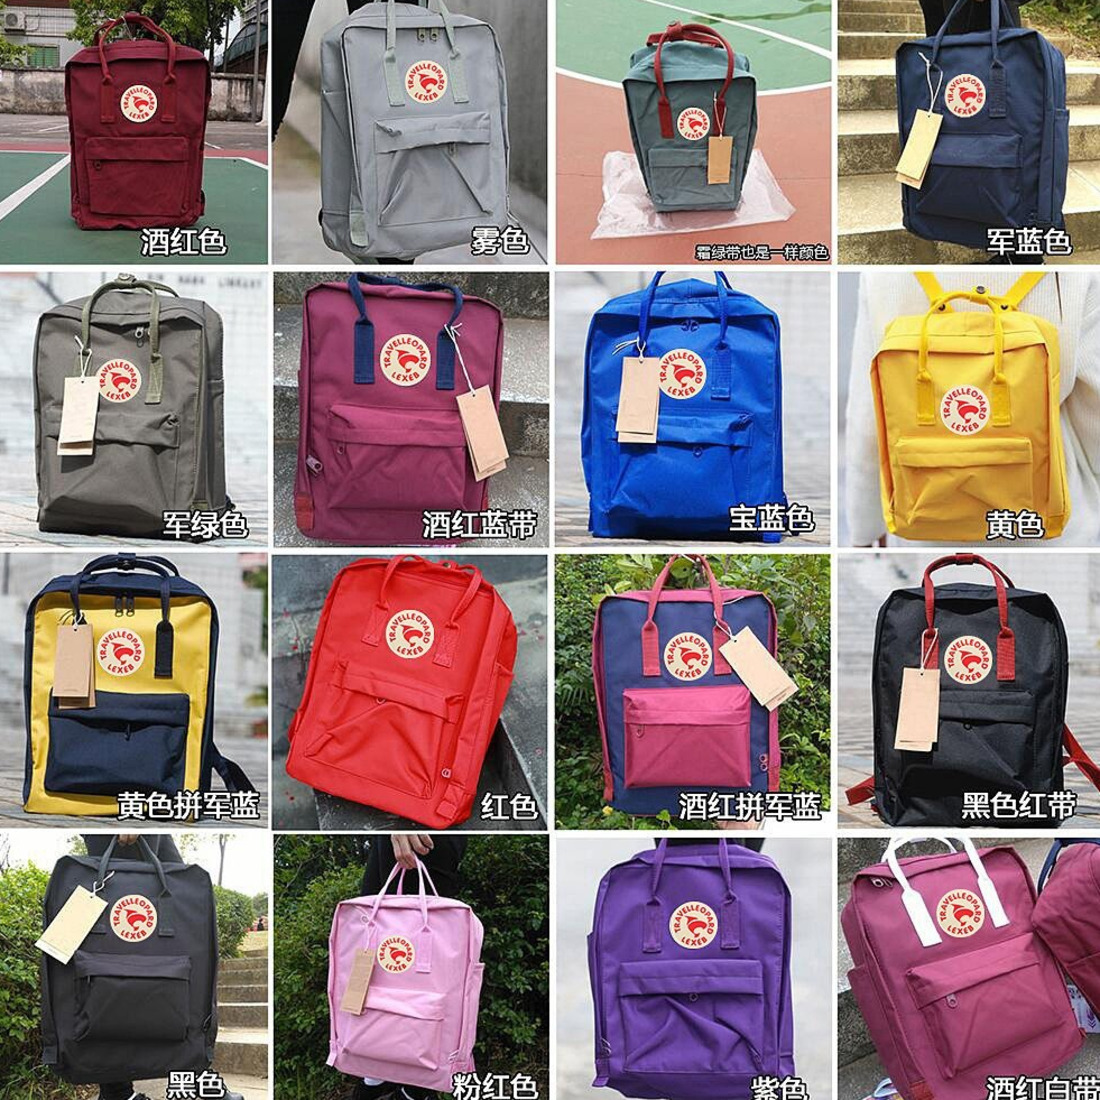 Original Kanken Backpack Kanken Classic Mini Mochilas Kanken School Bag 2018 16l With Fox Logo Backpack Women Men Boy Girls Kid